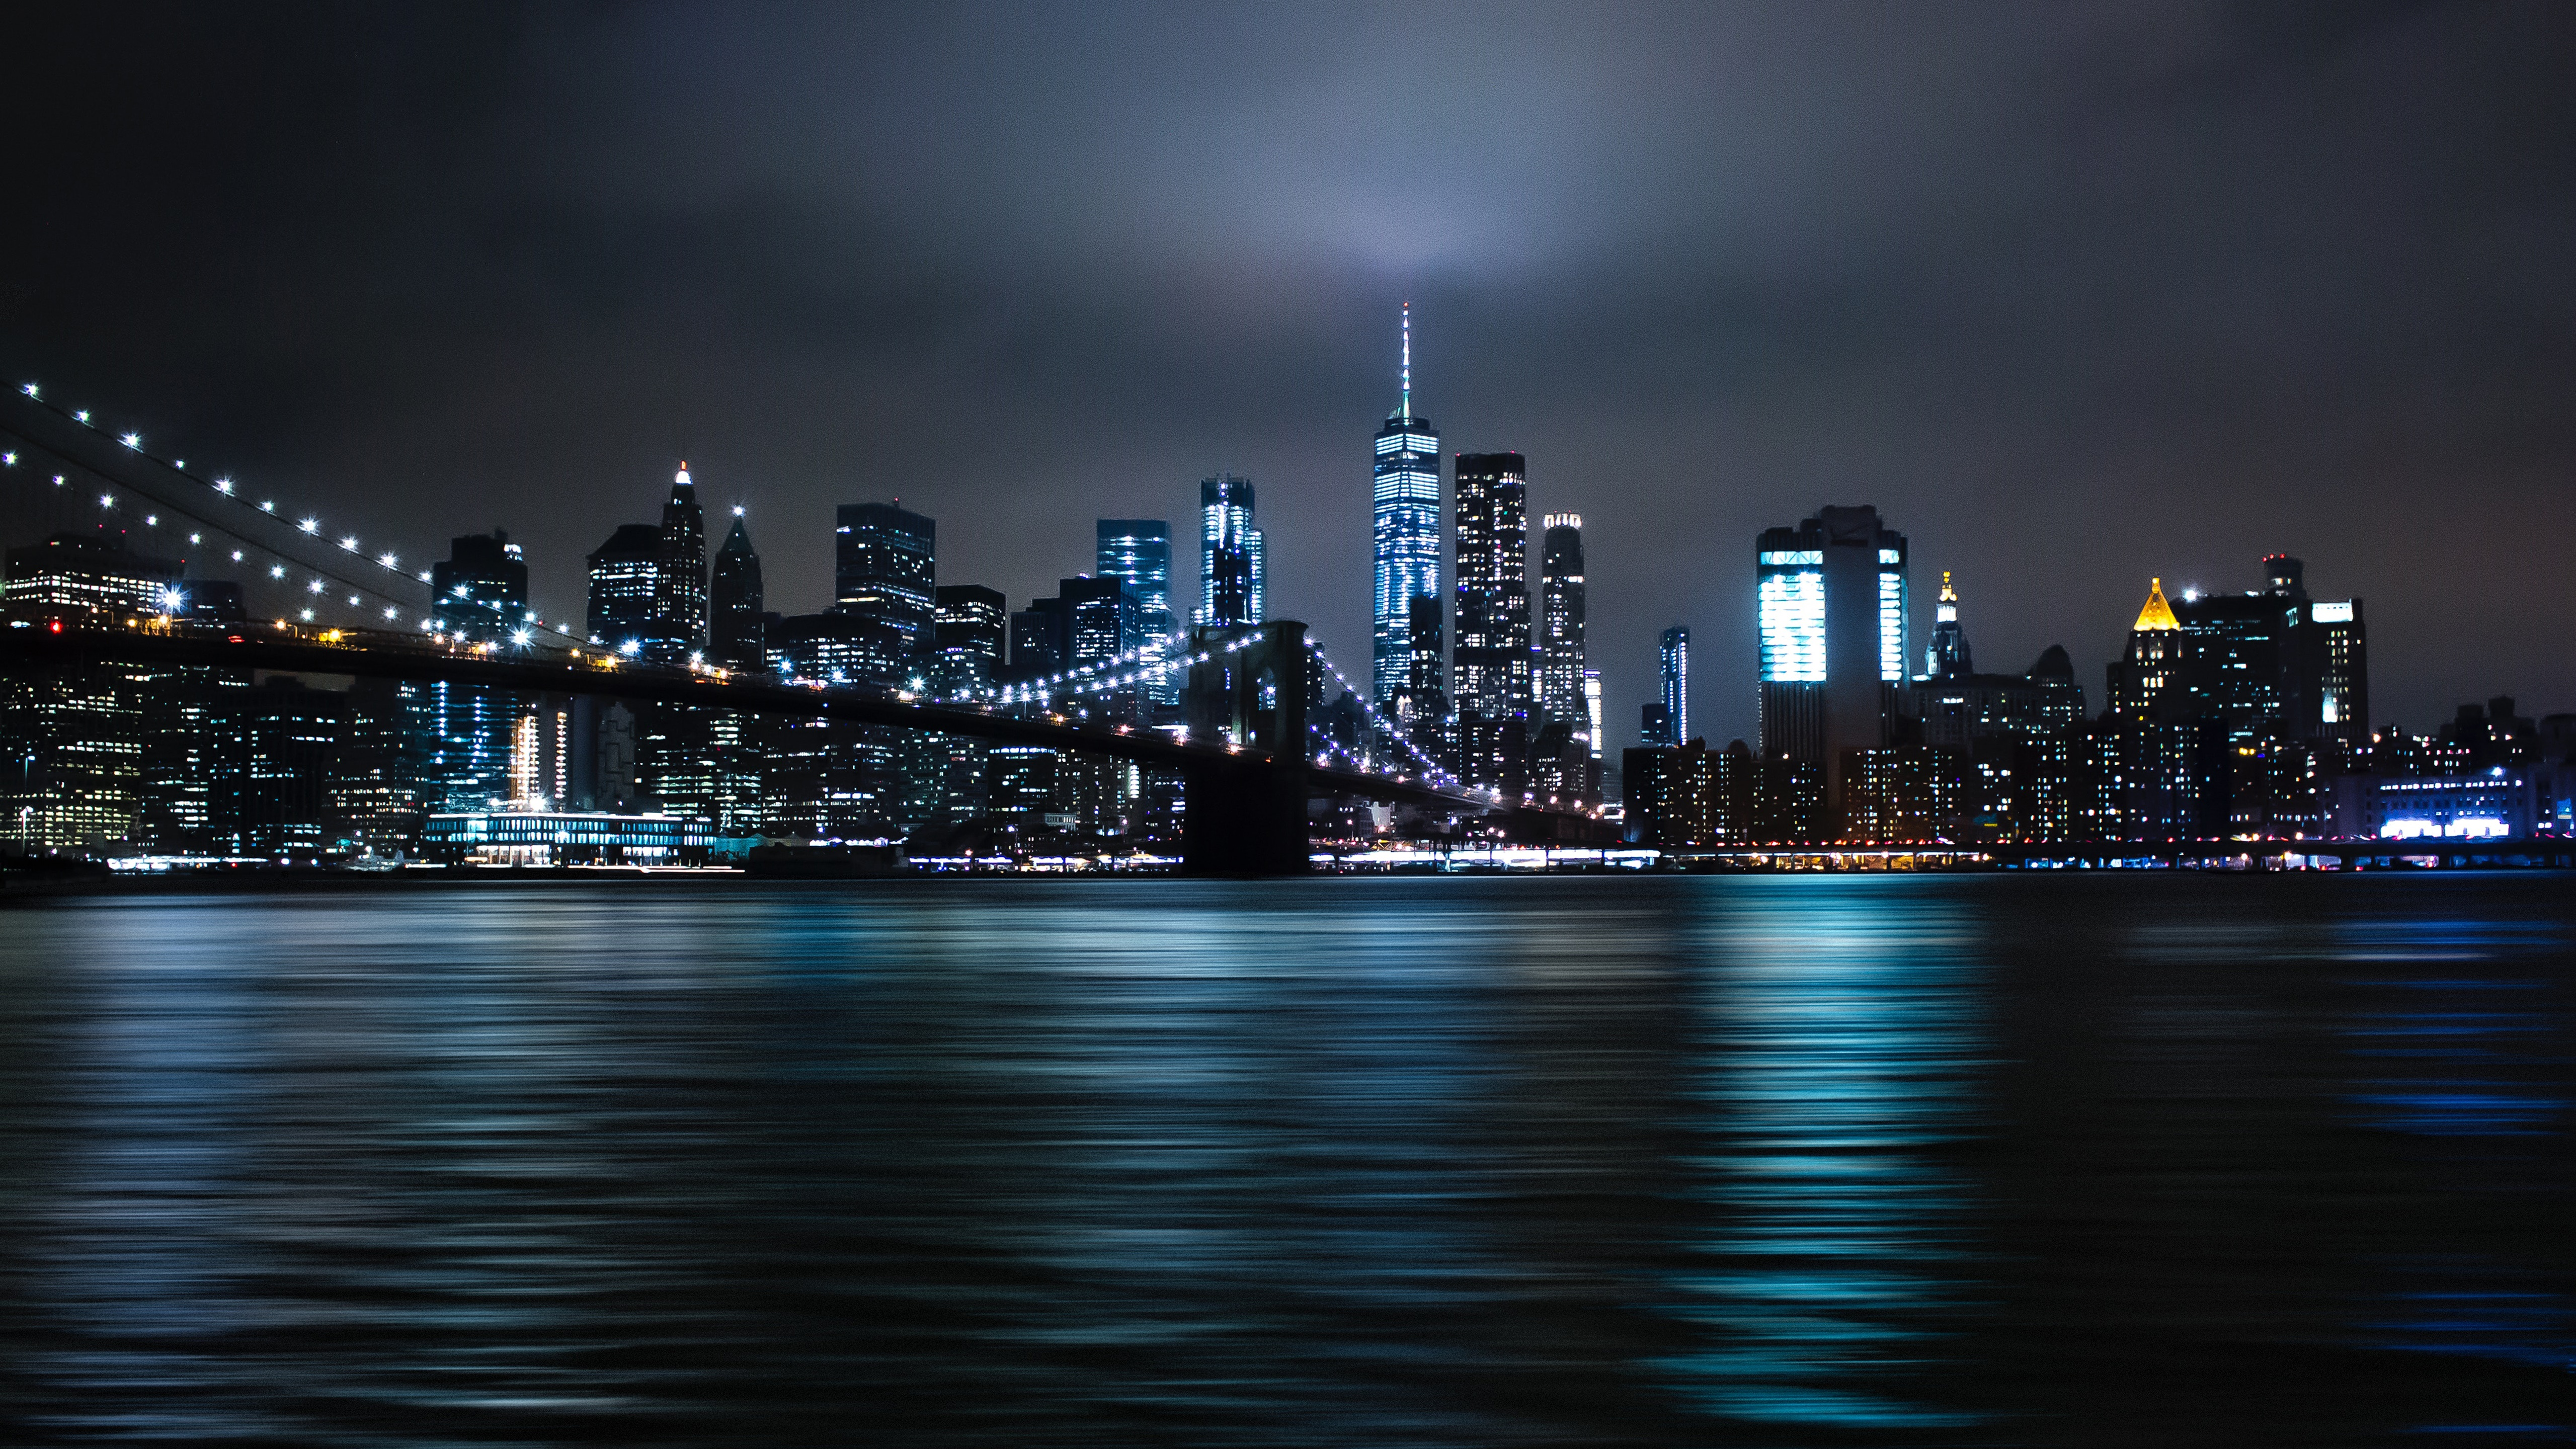 The Brooklyn Bridge and the Empire State Building at night wallpaper